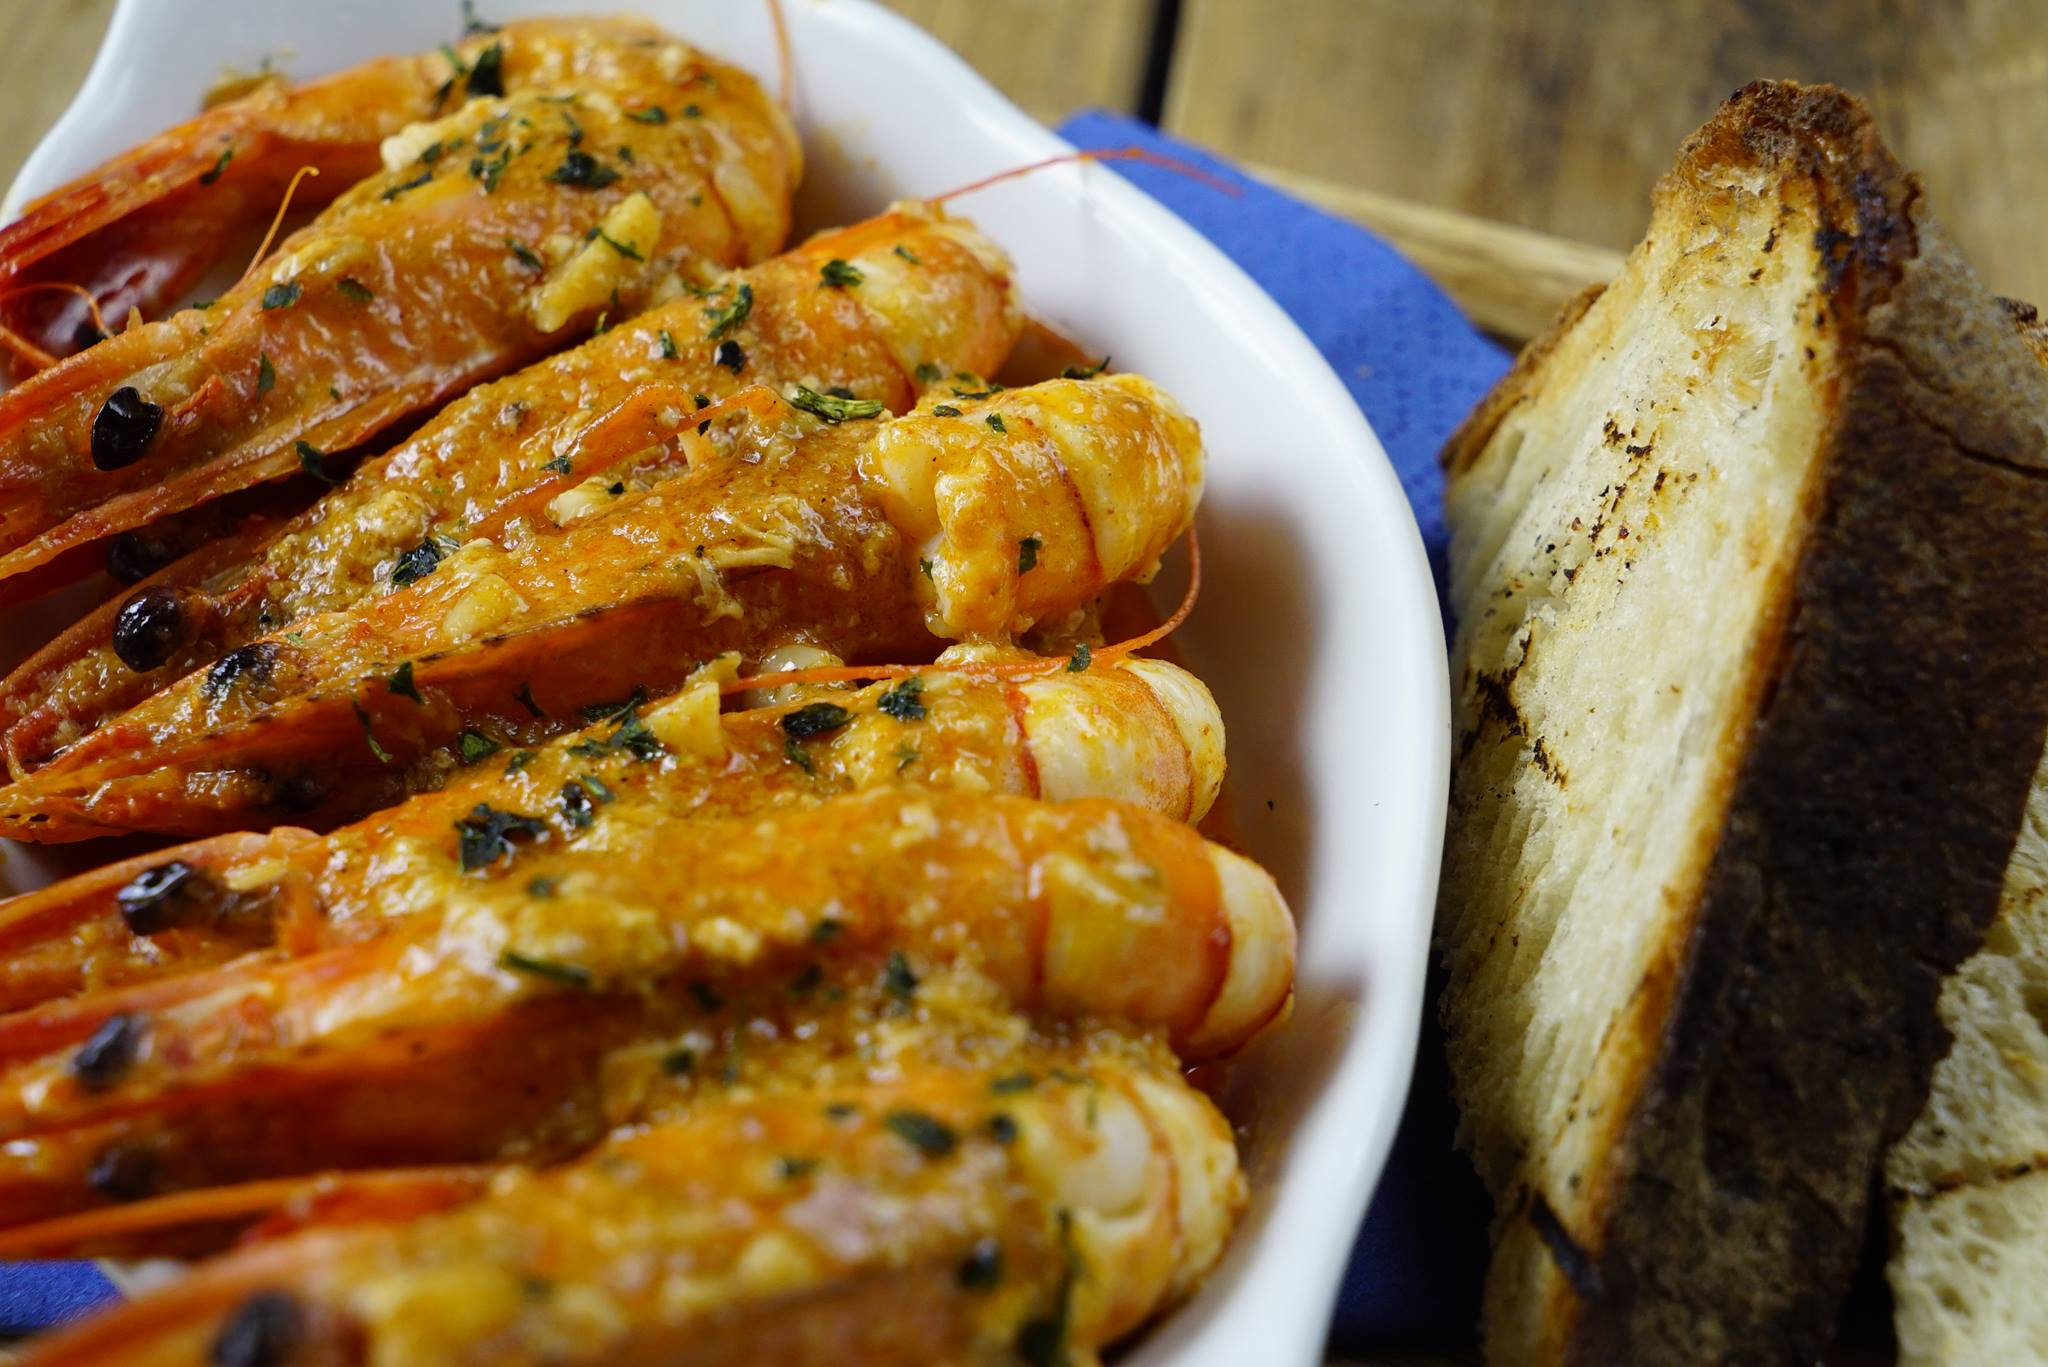 Prawns and bread at The Star & Anchor pub, West Ealing